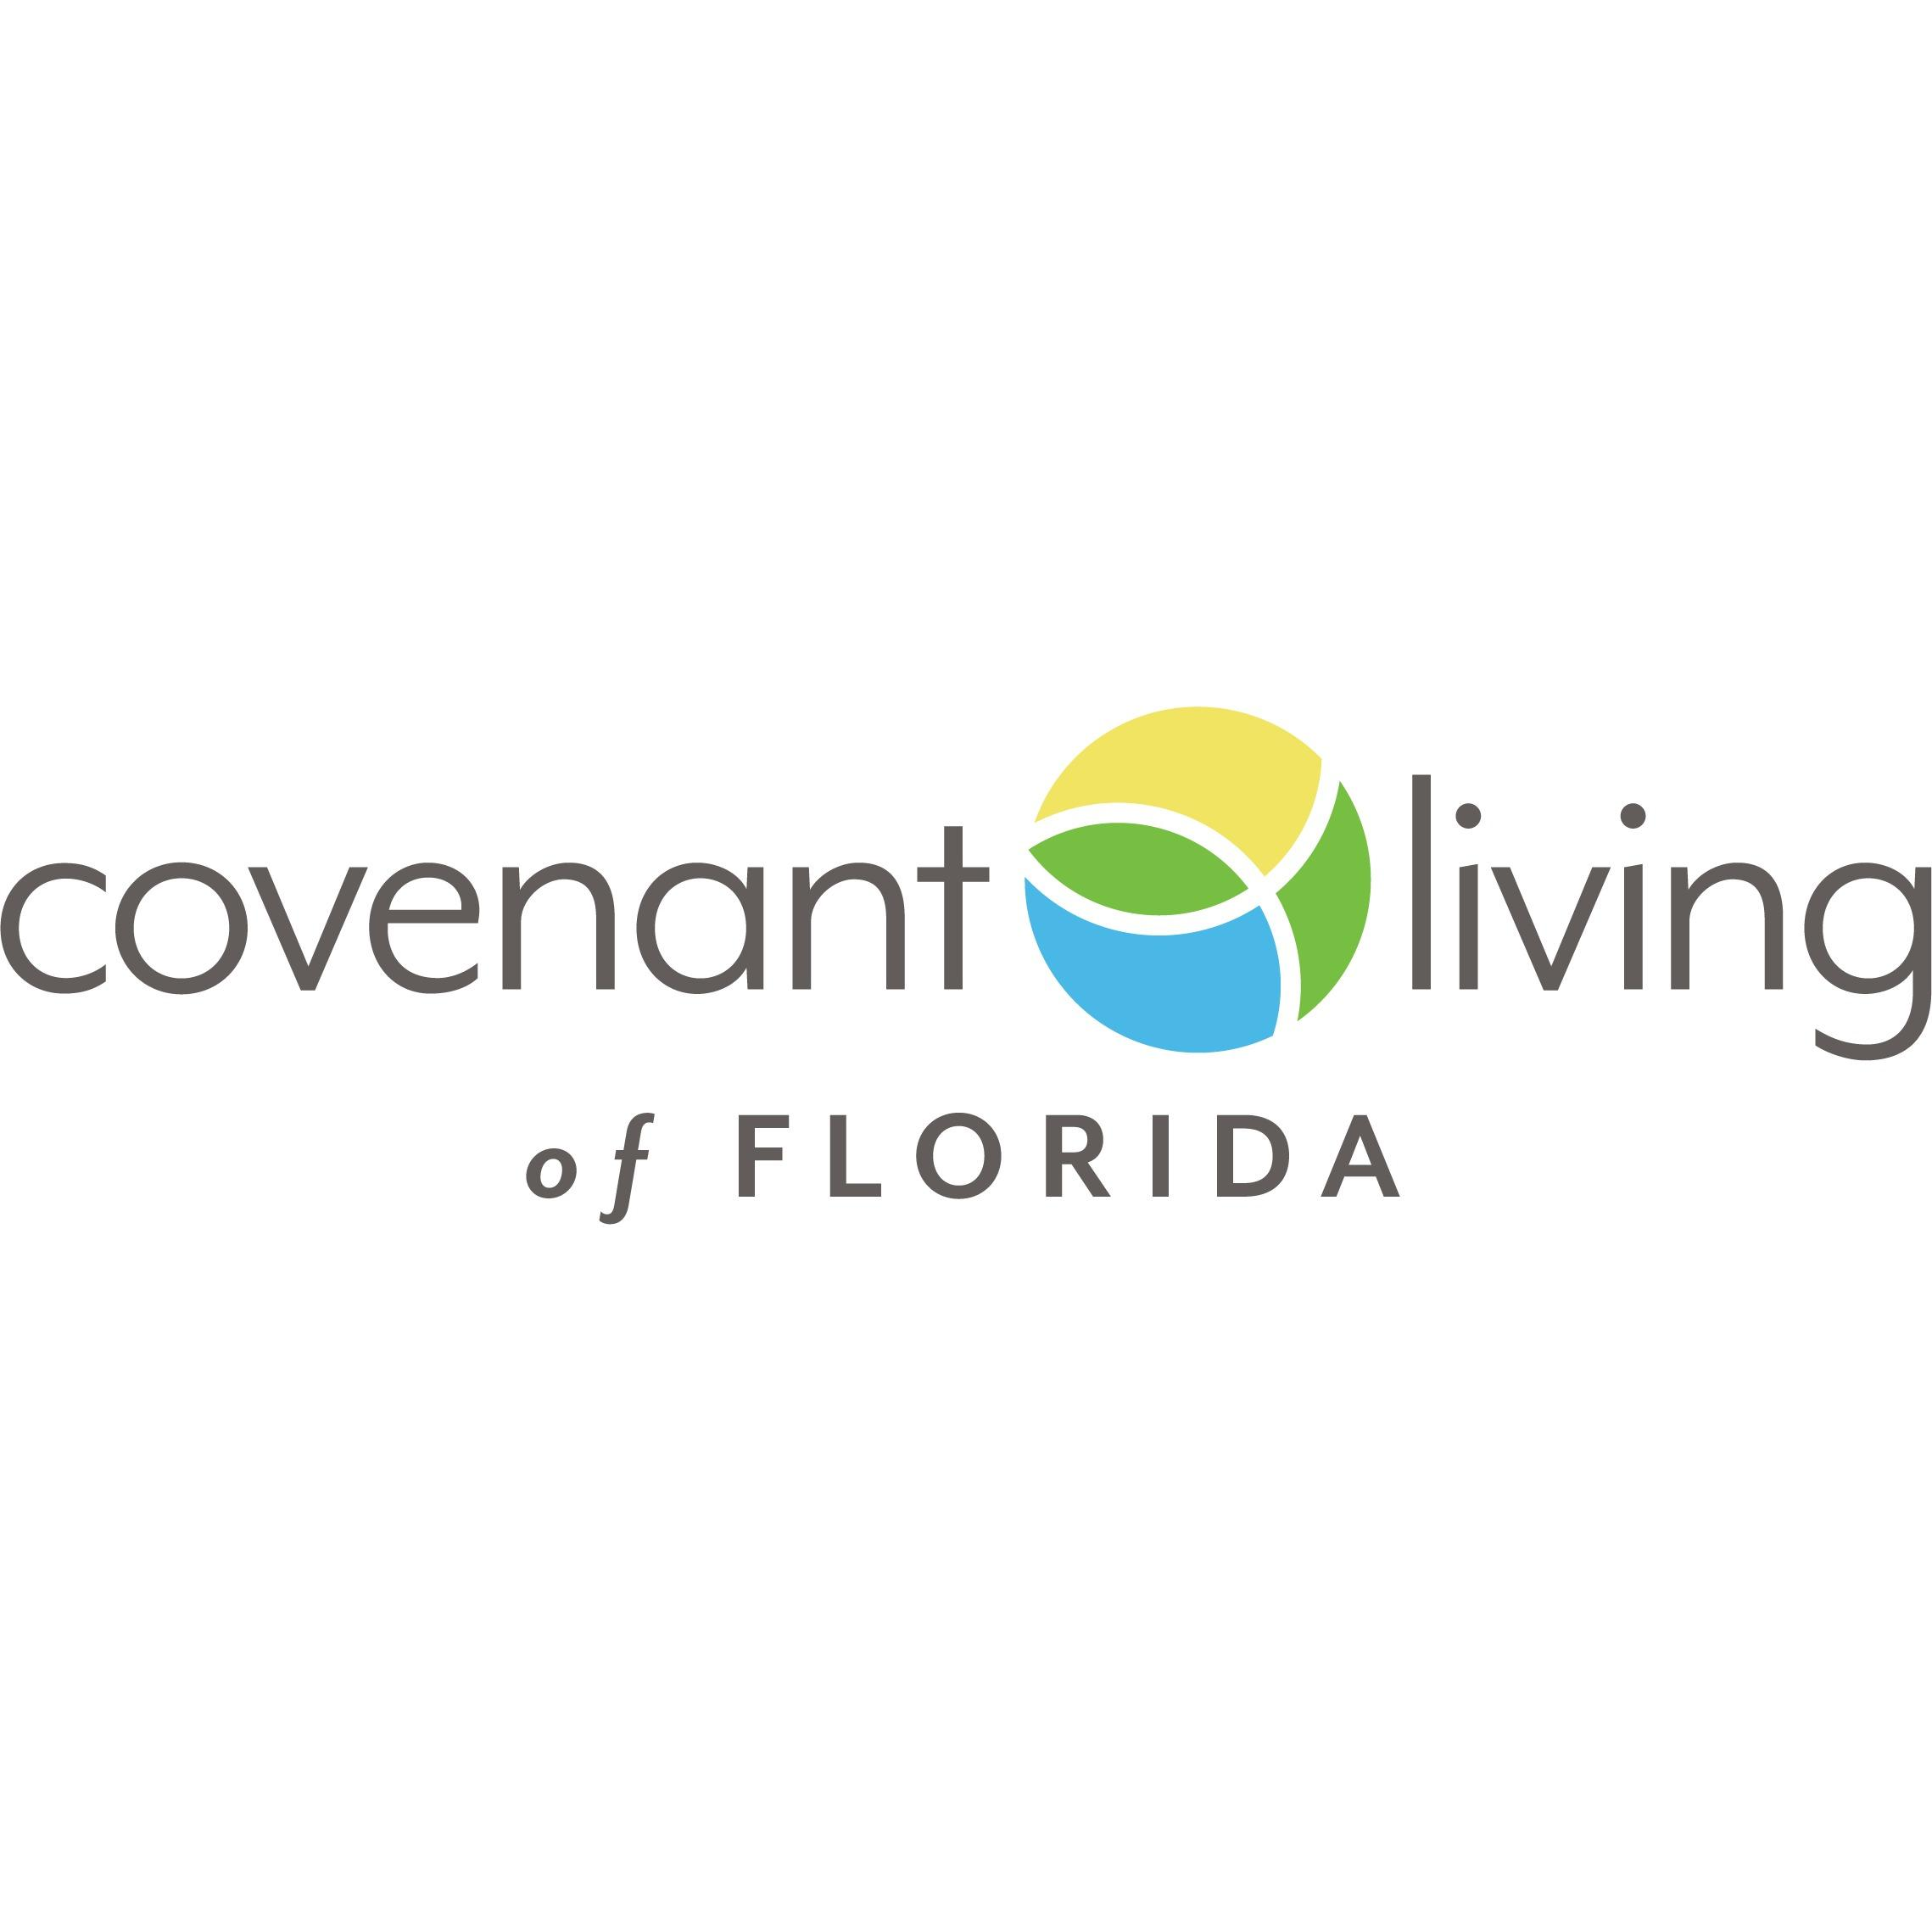 Covenant Living of Florida